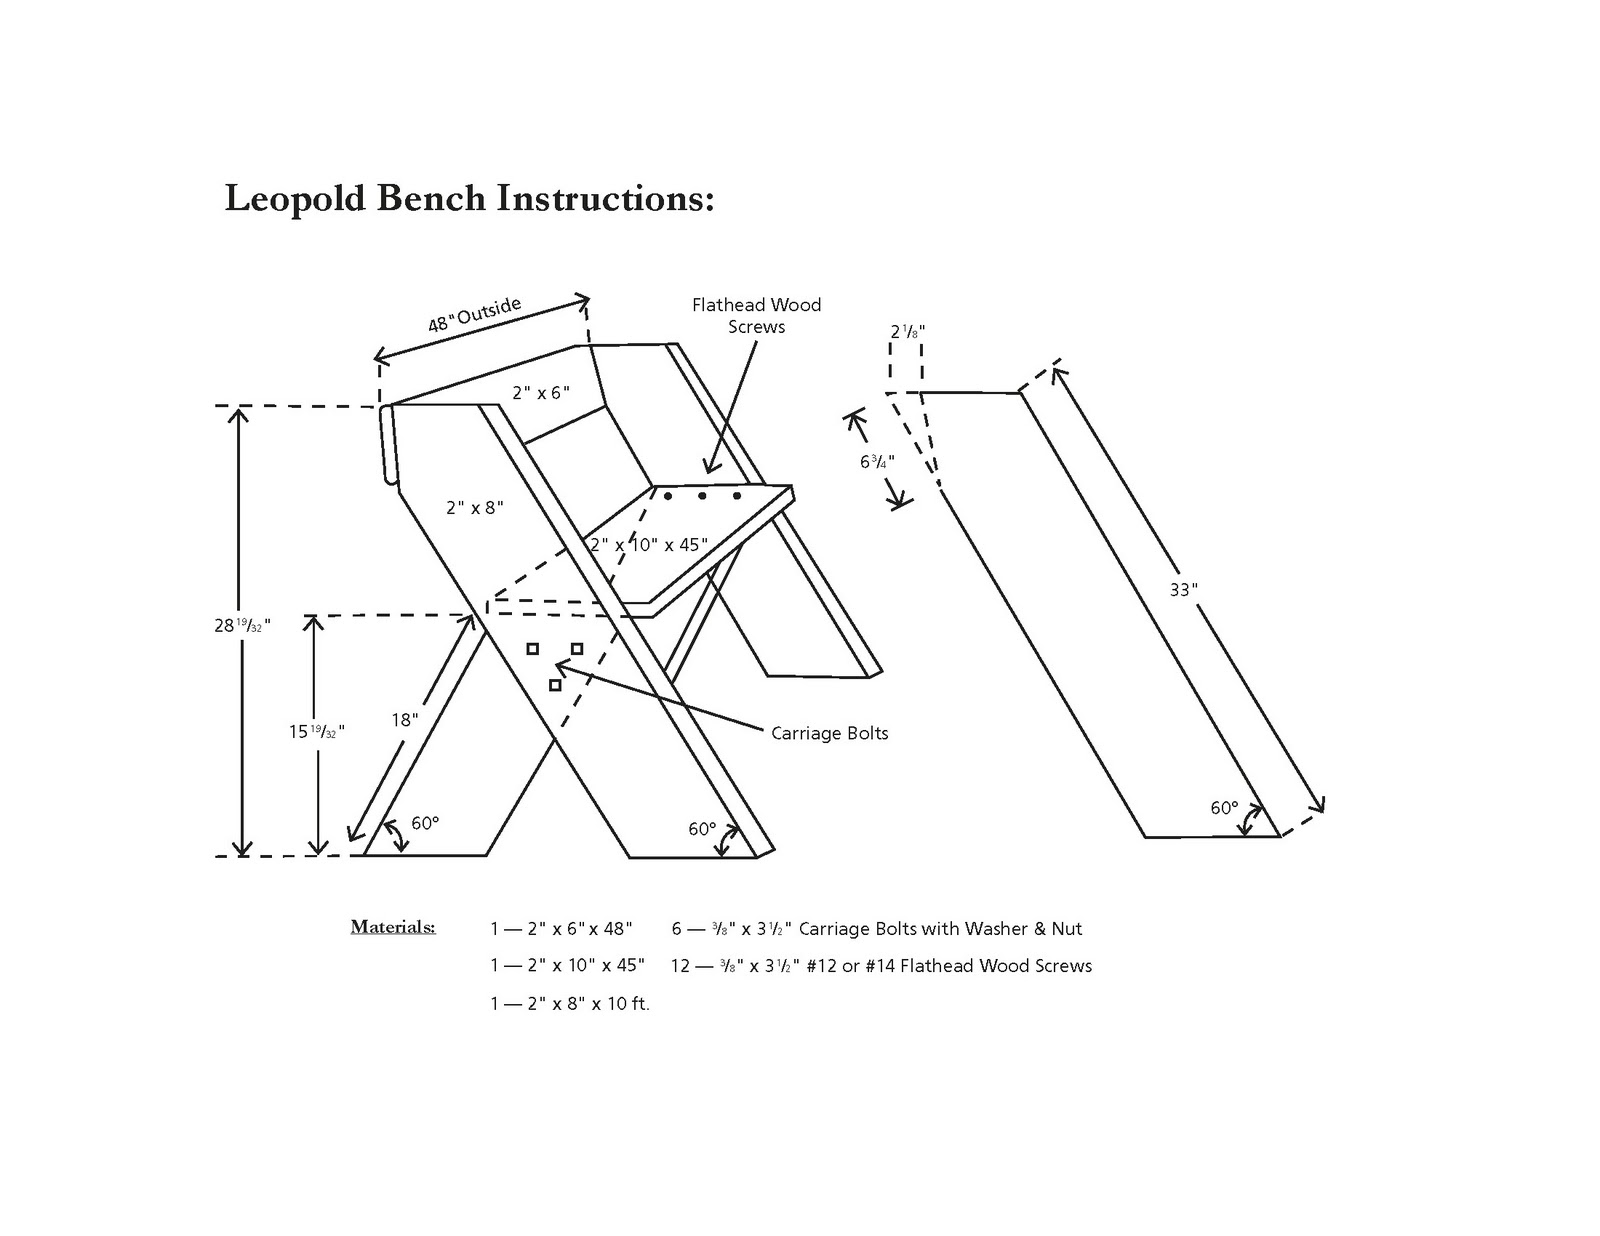 aldo leopold bench plans